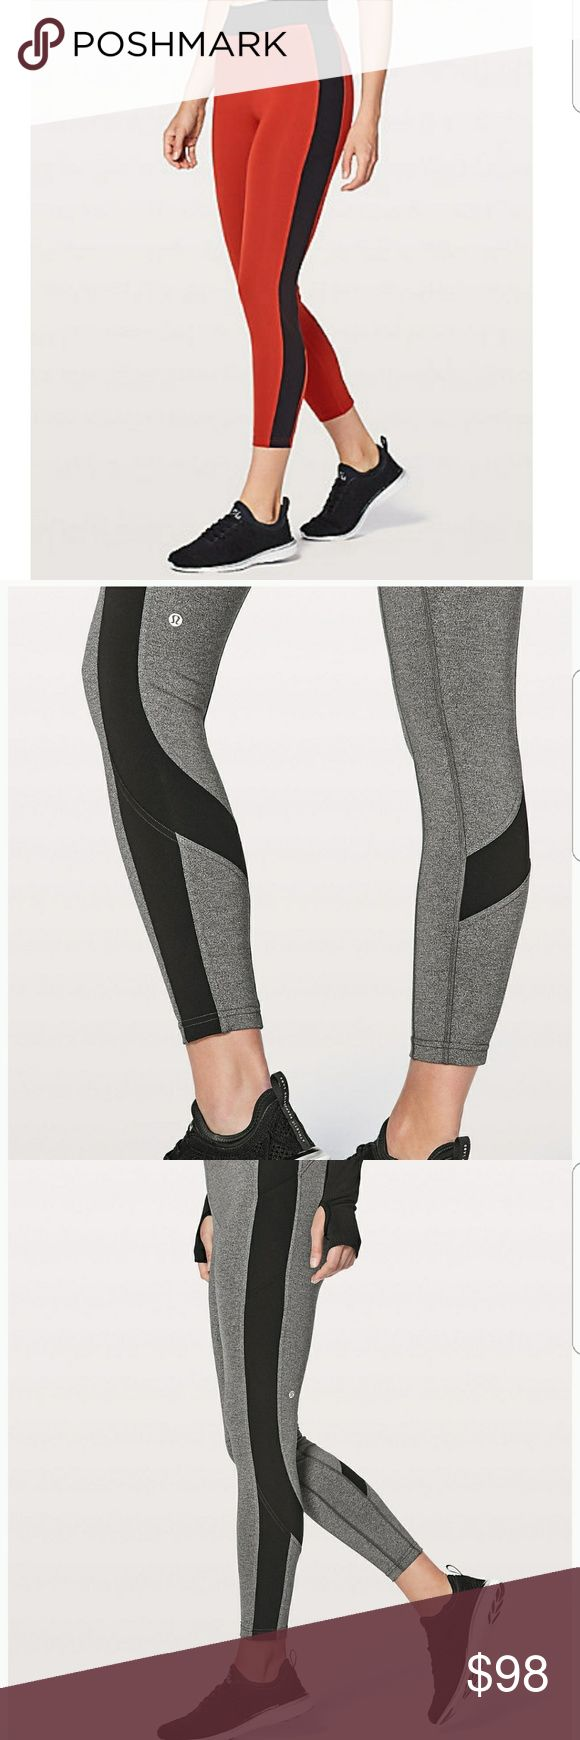 SALE SALE TODAY ONLY!  Lululemon Crops This are red color, online only sold out!  7/8 not too short not too long! Brand new with tags! Feel free to make offers! lululemon athletica Pants Skinny